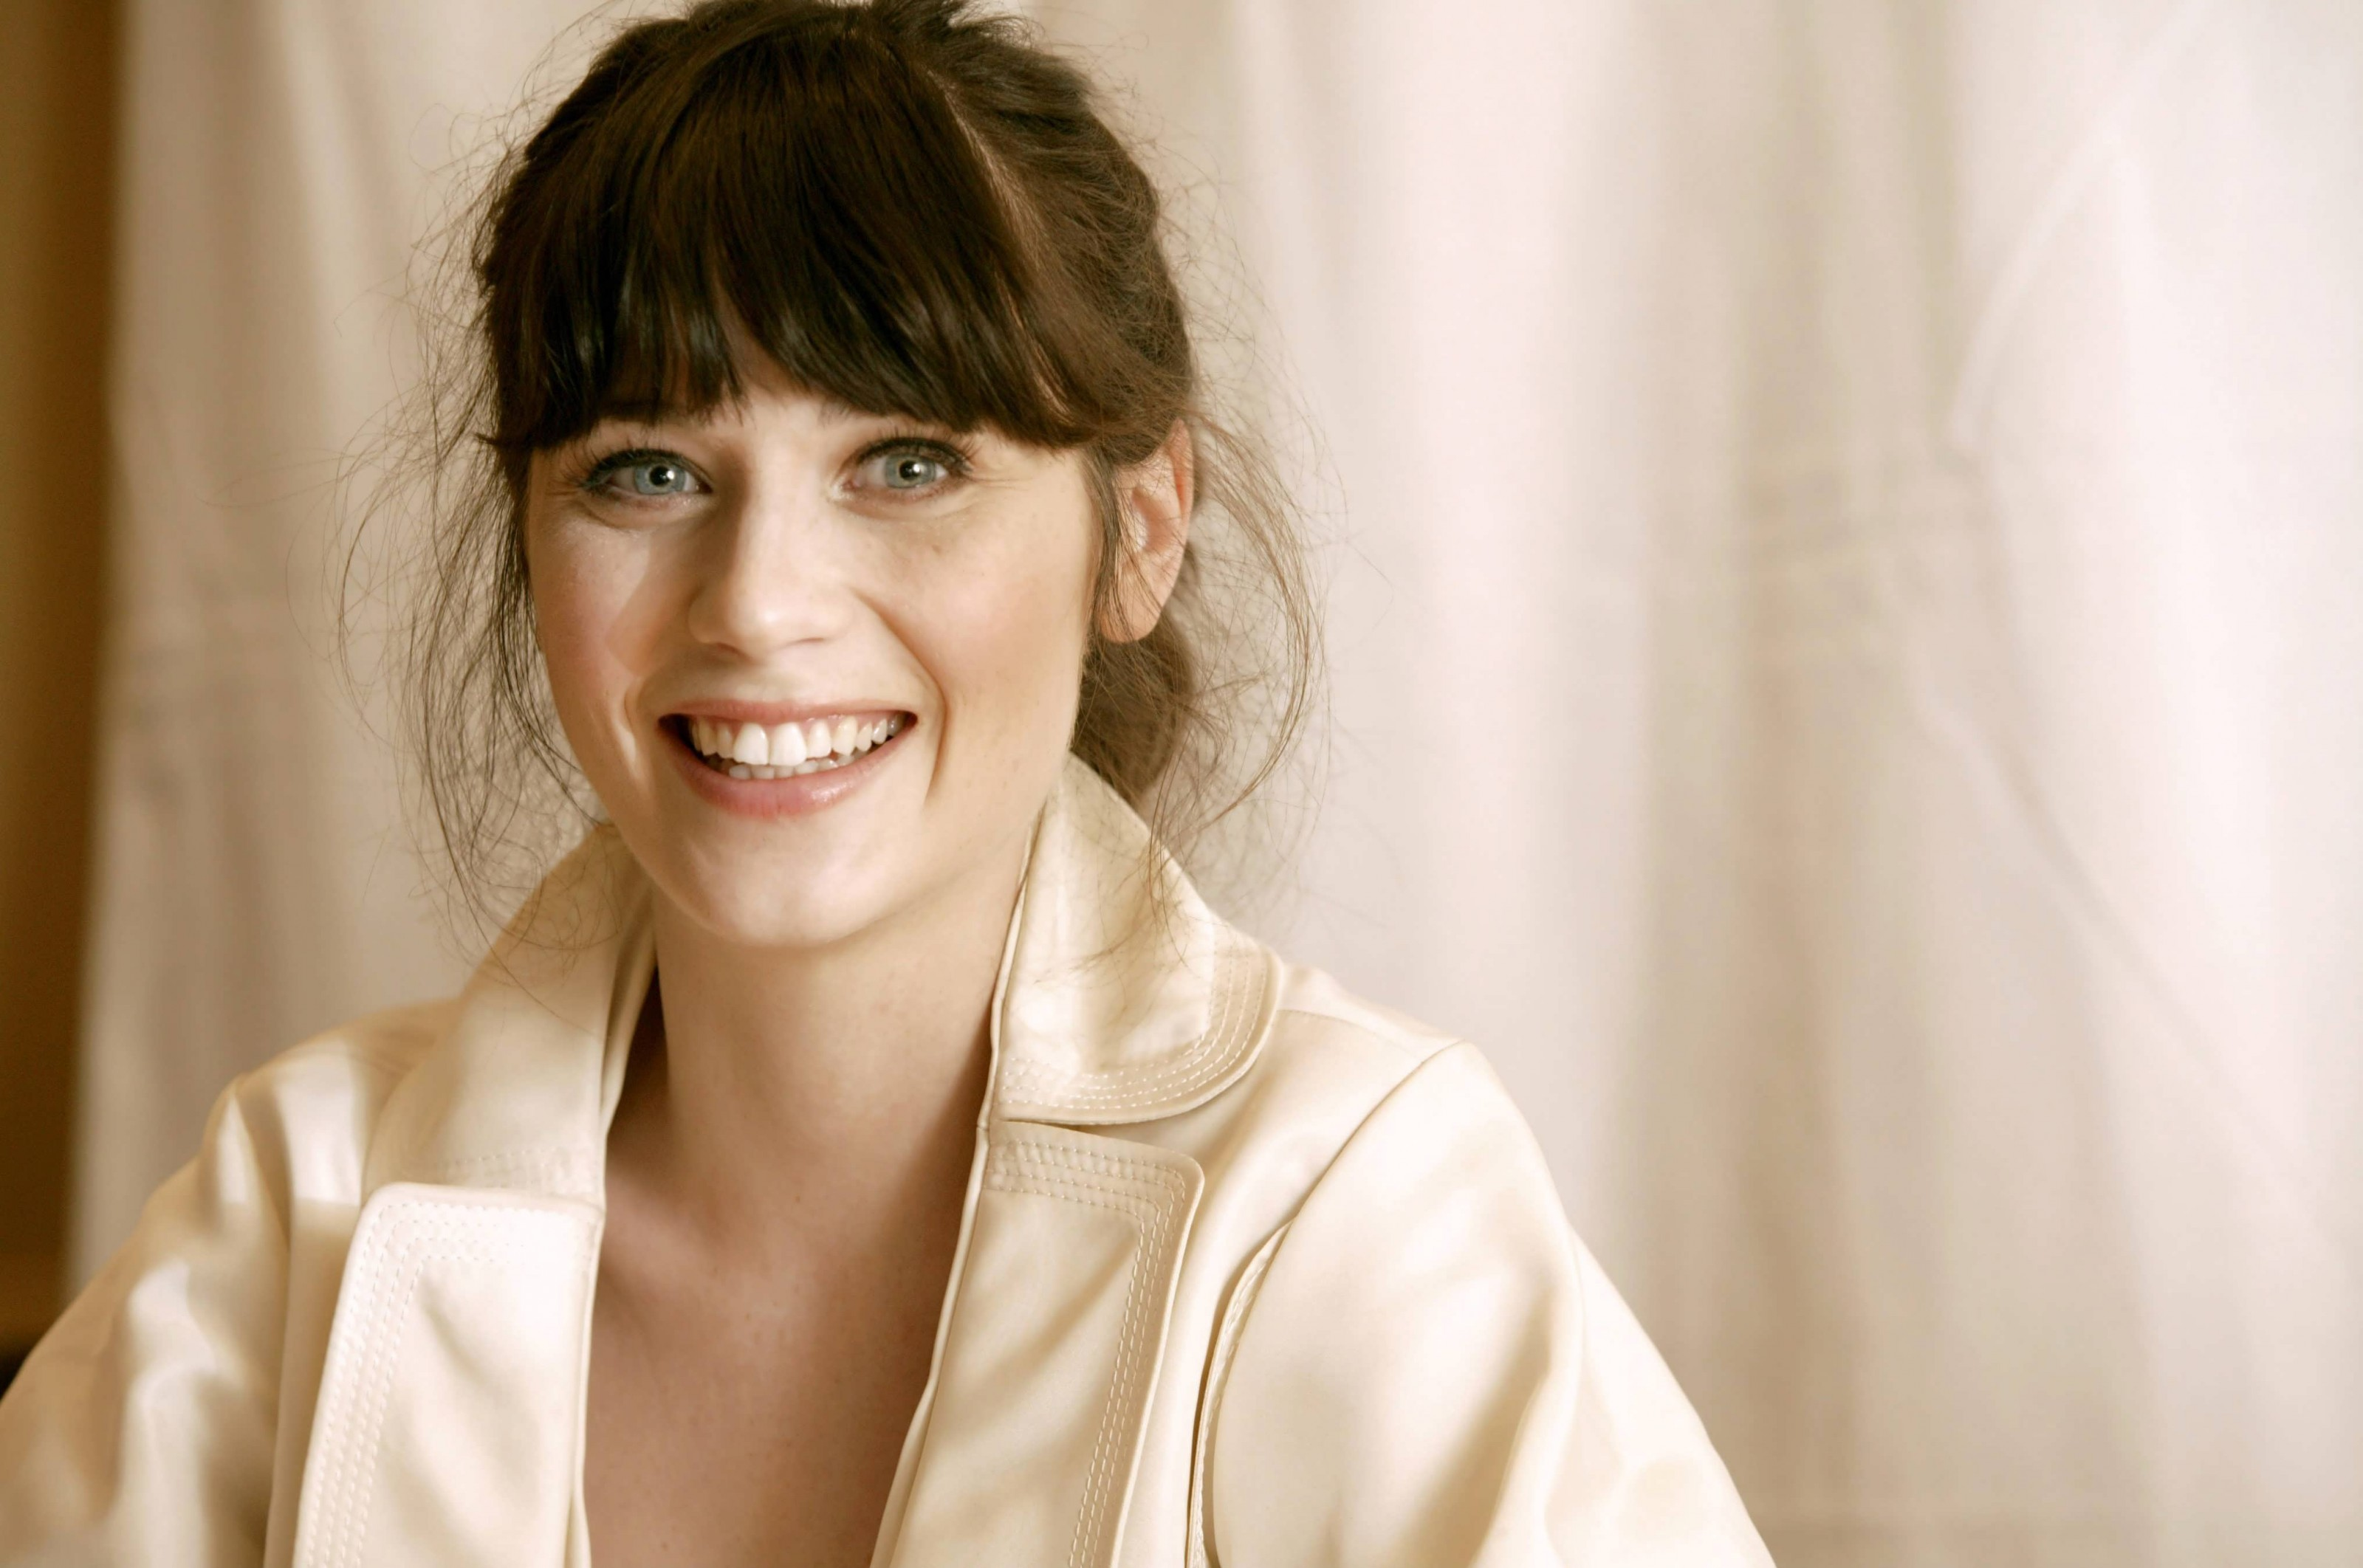 zooey deschanel smile wallpaper background 63508